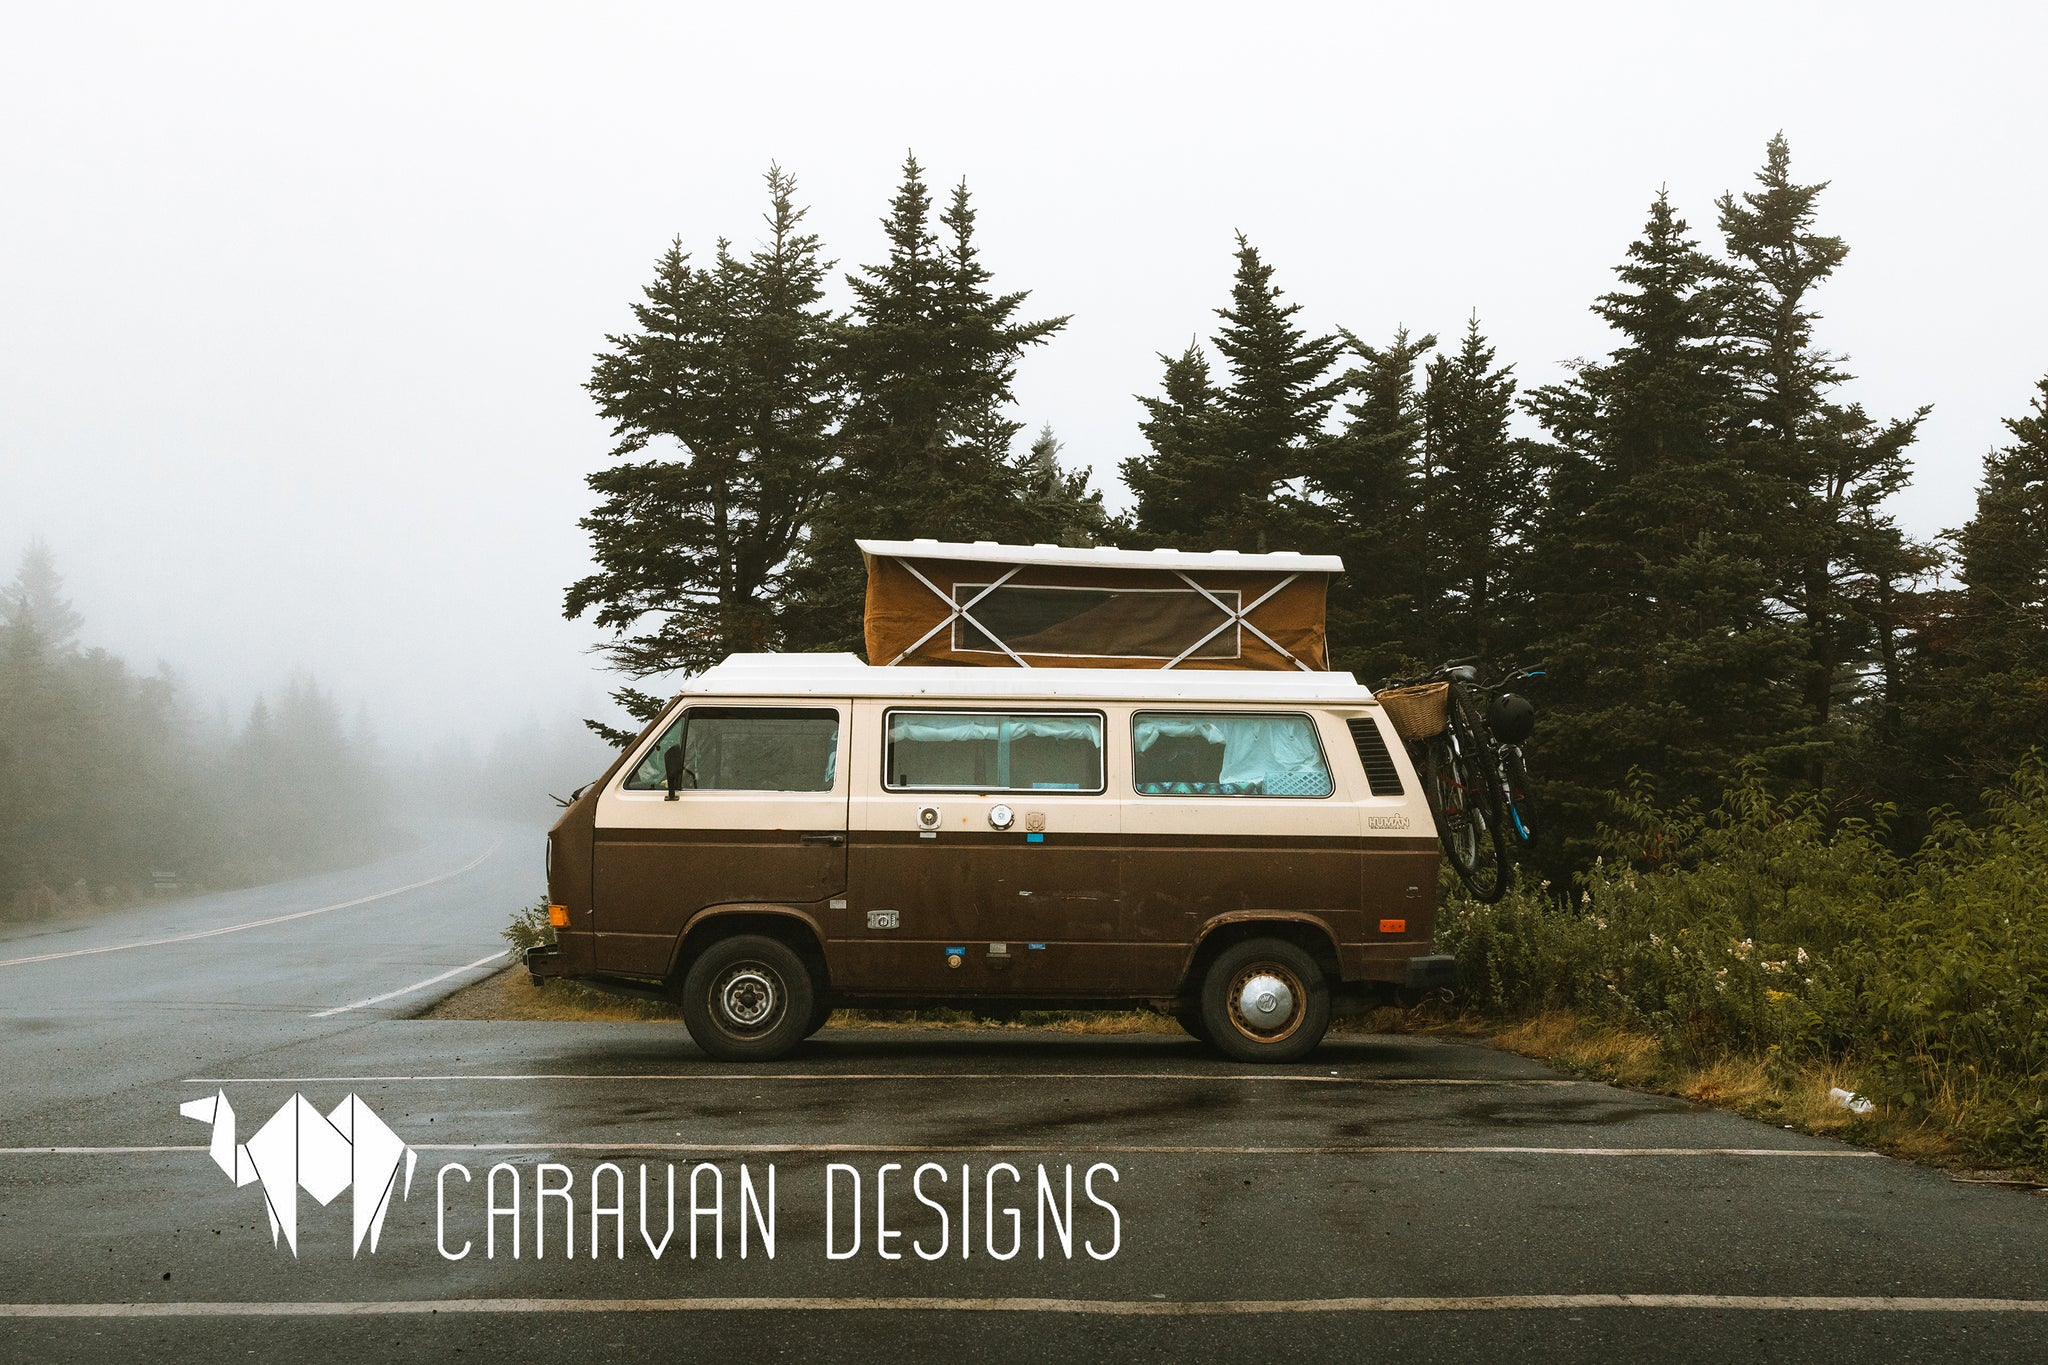 About Us - Caravan Designs